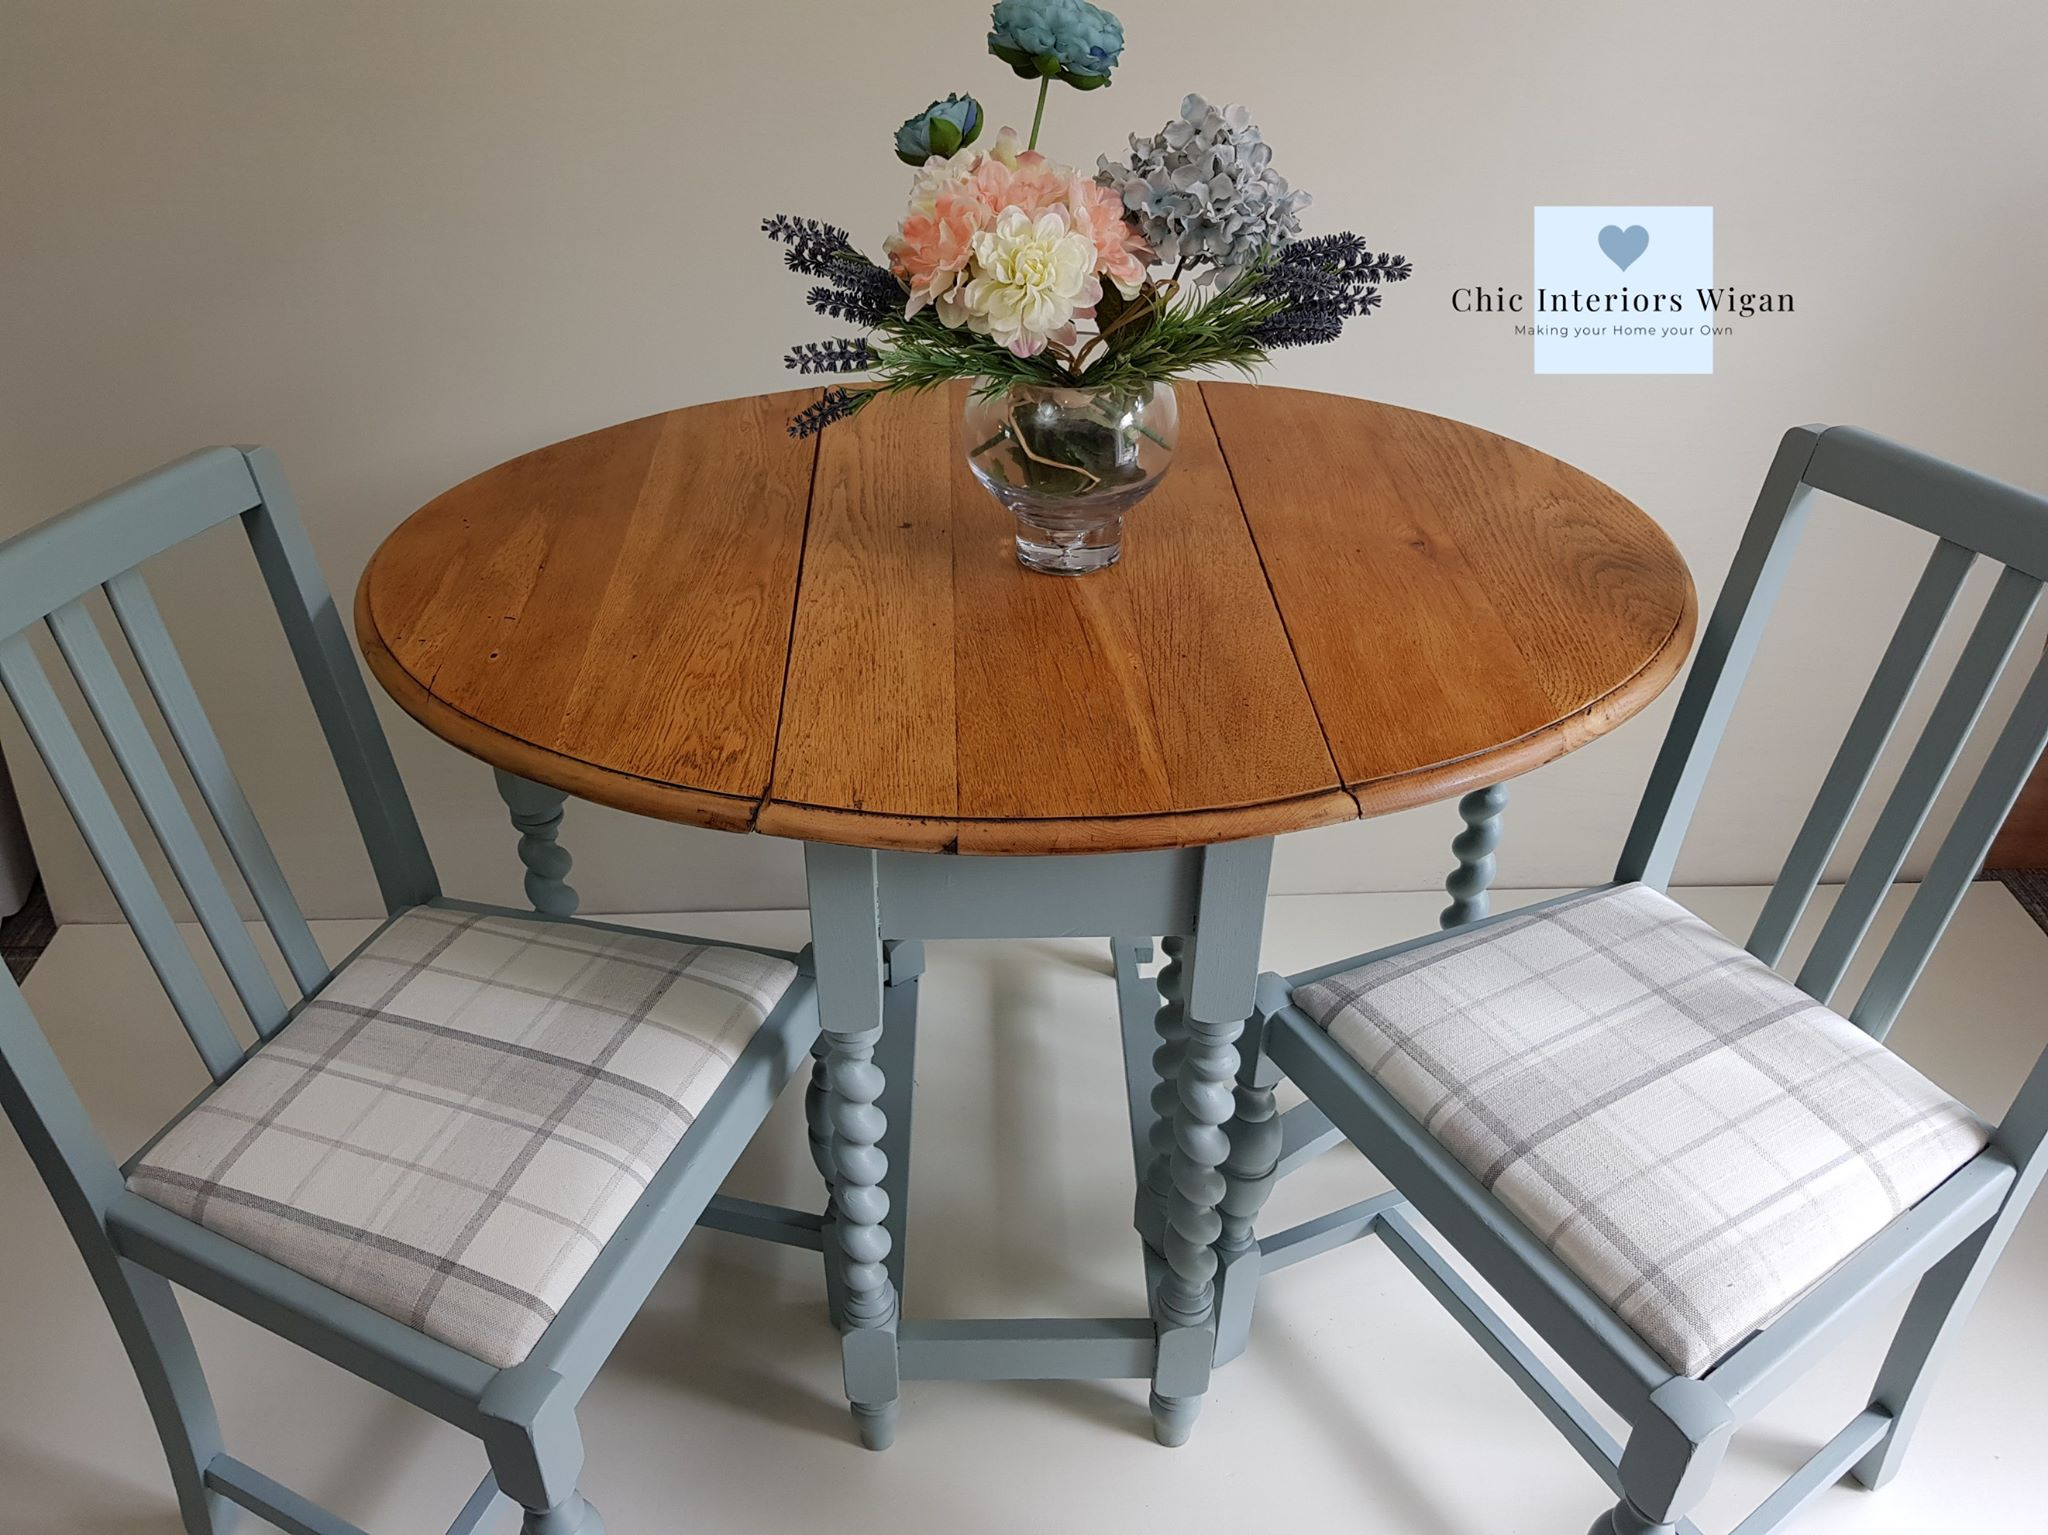 Gate leg table & chairs